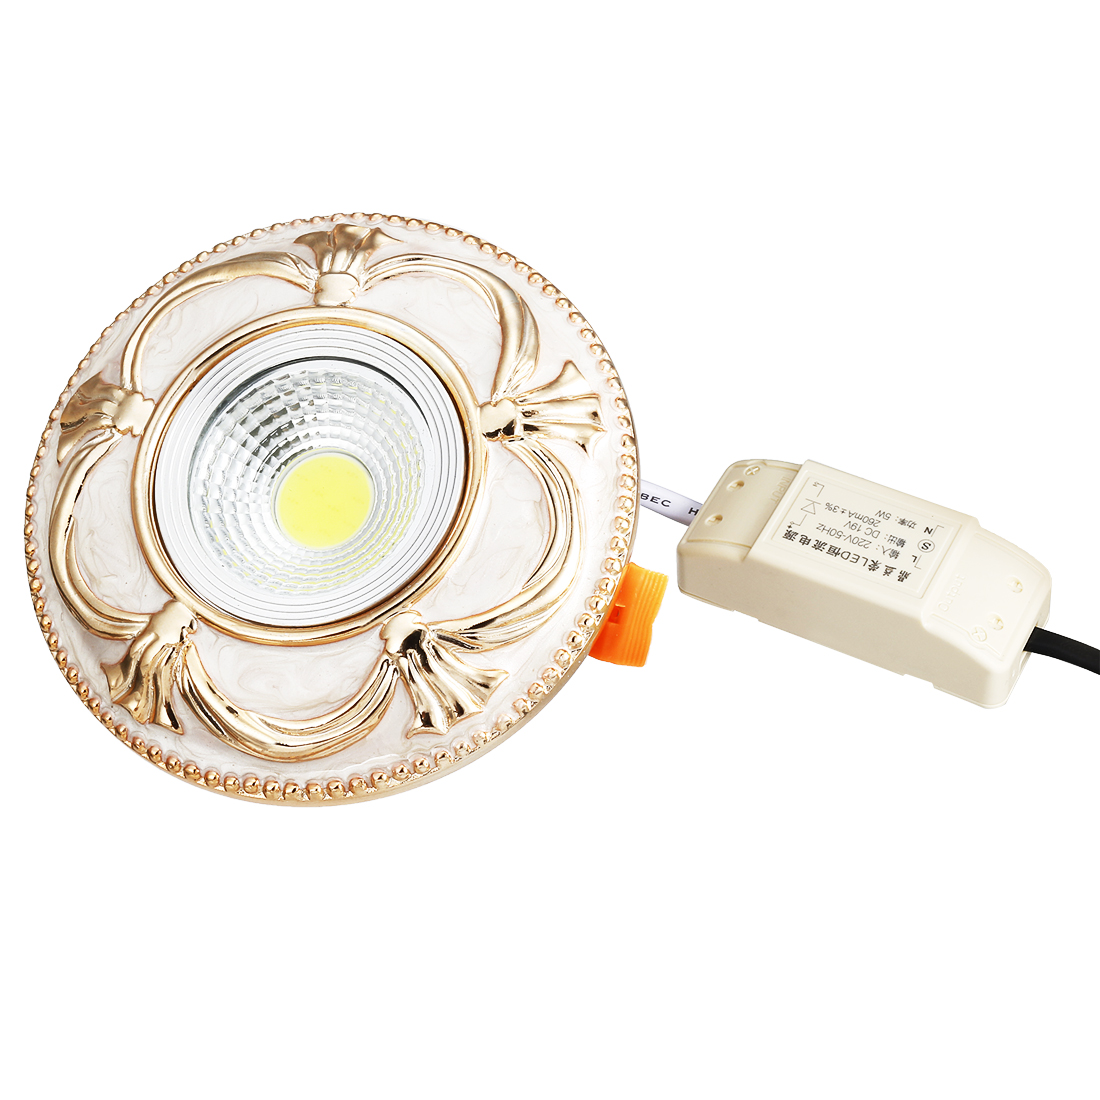 S-0018 5W 1 LEDs Round Shape Pure White Light Ceiling Lamp Downlight AC 90-250V